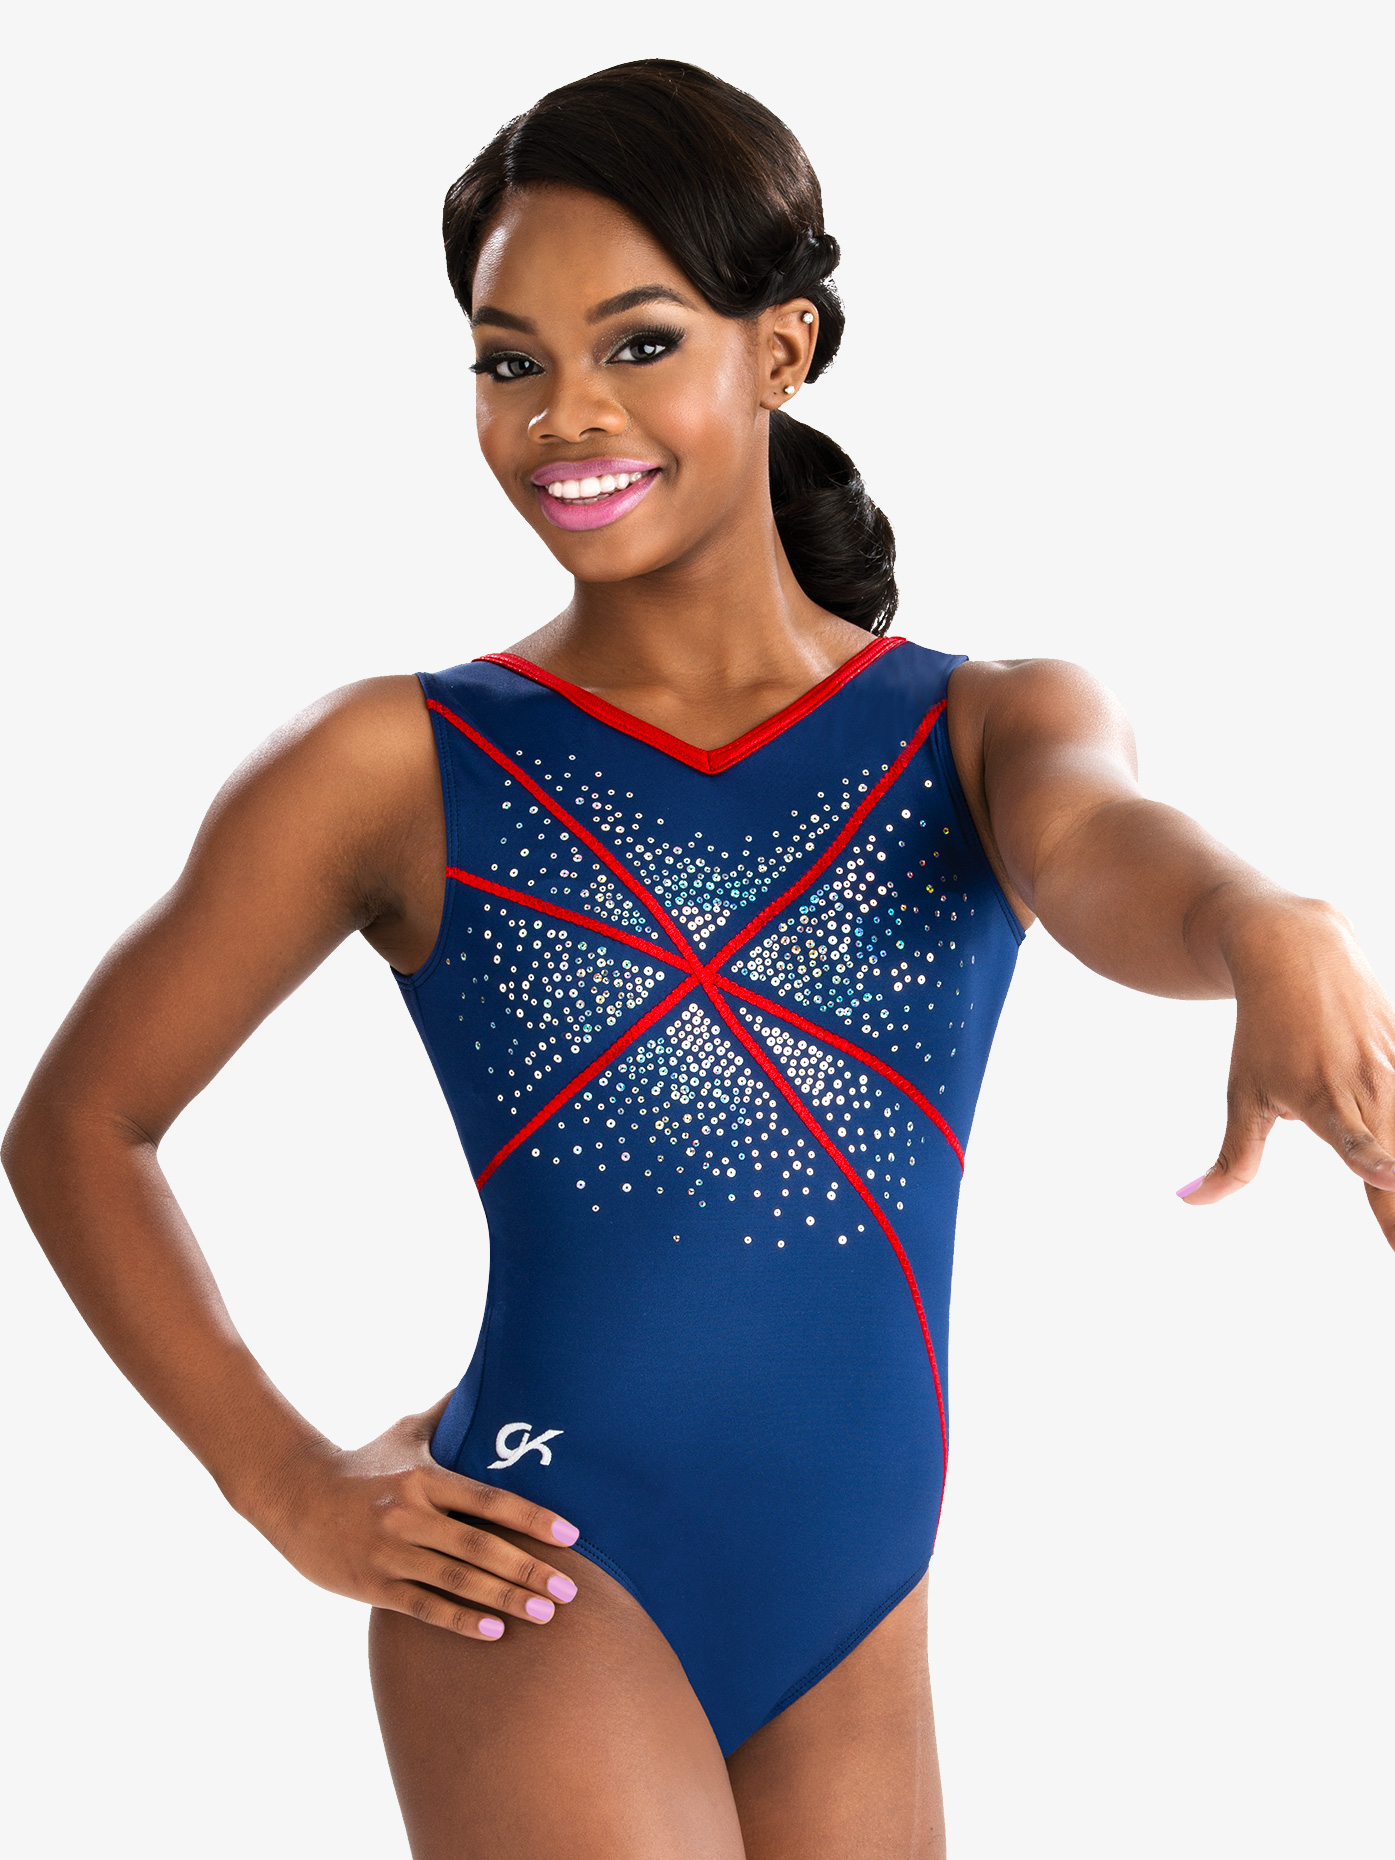 GK Elite Girls Sequinz Fireworks Tank Leotard 3732C